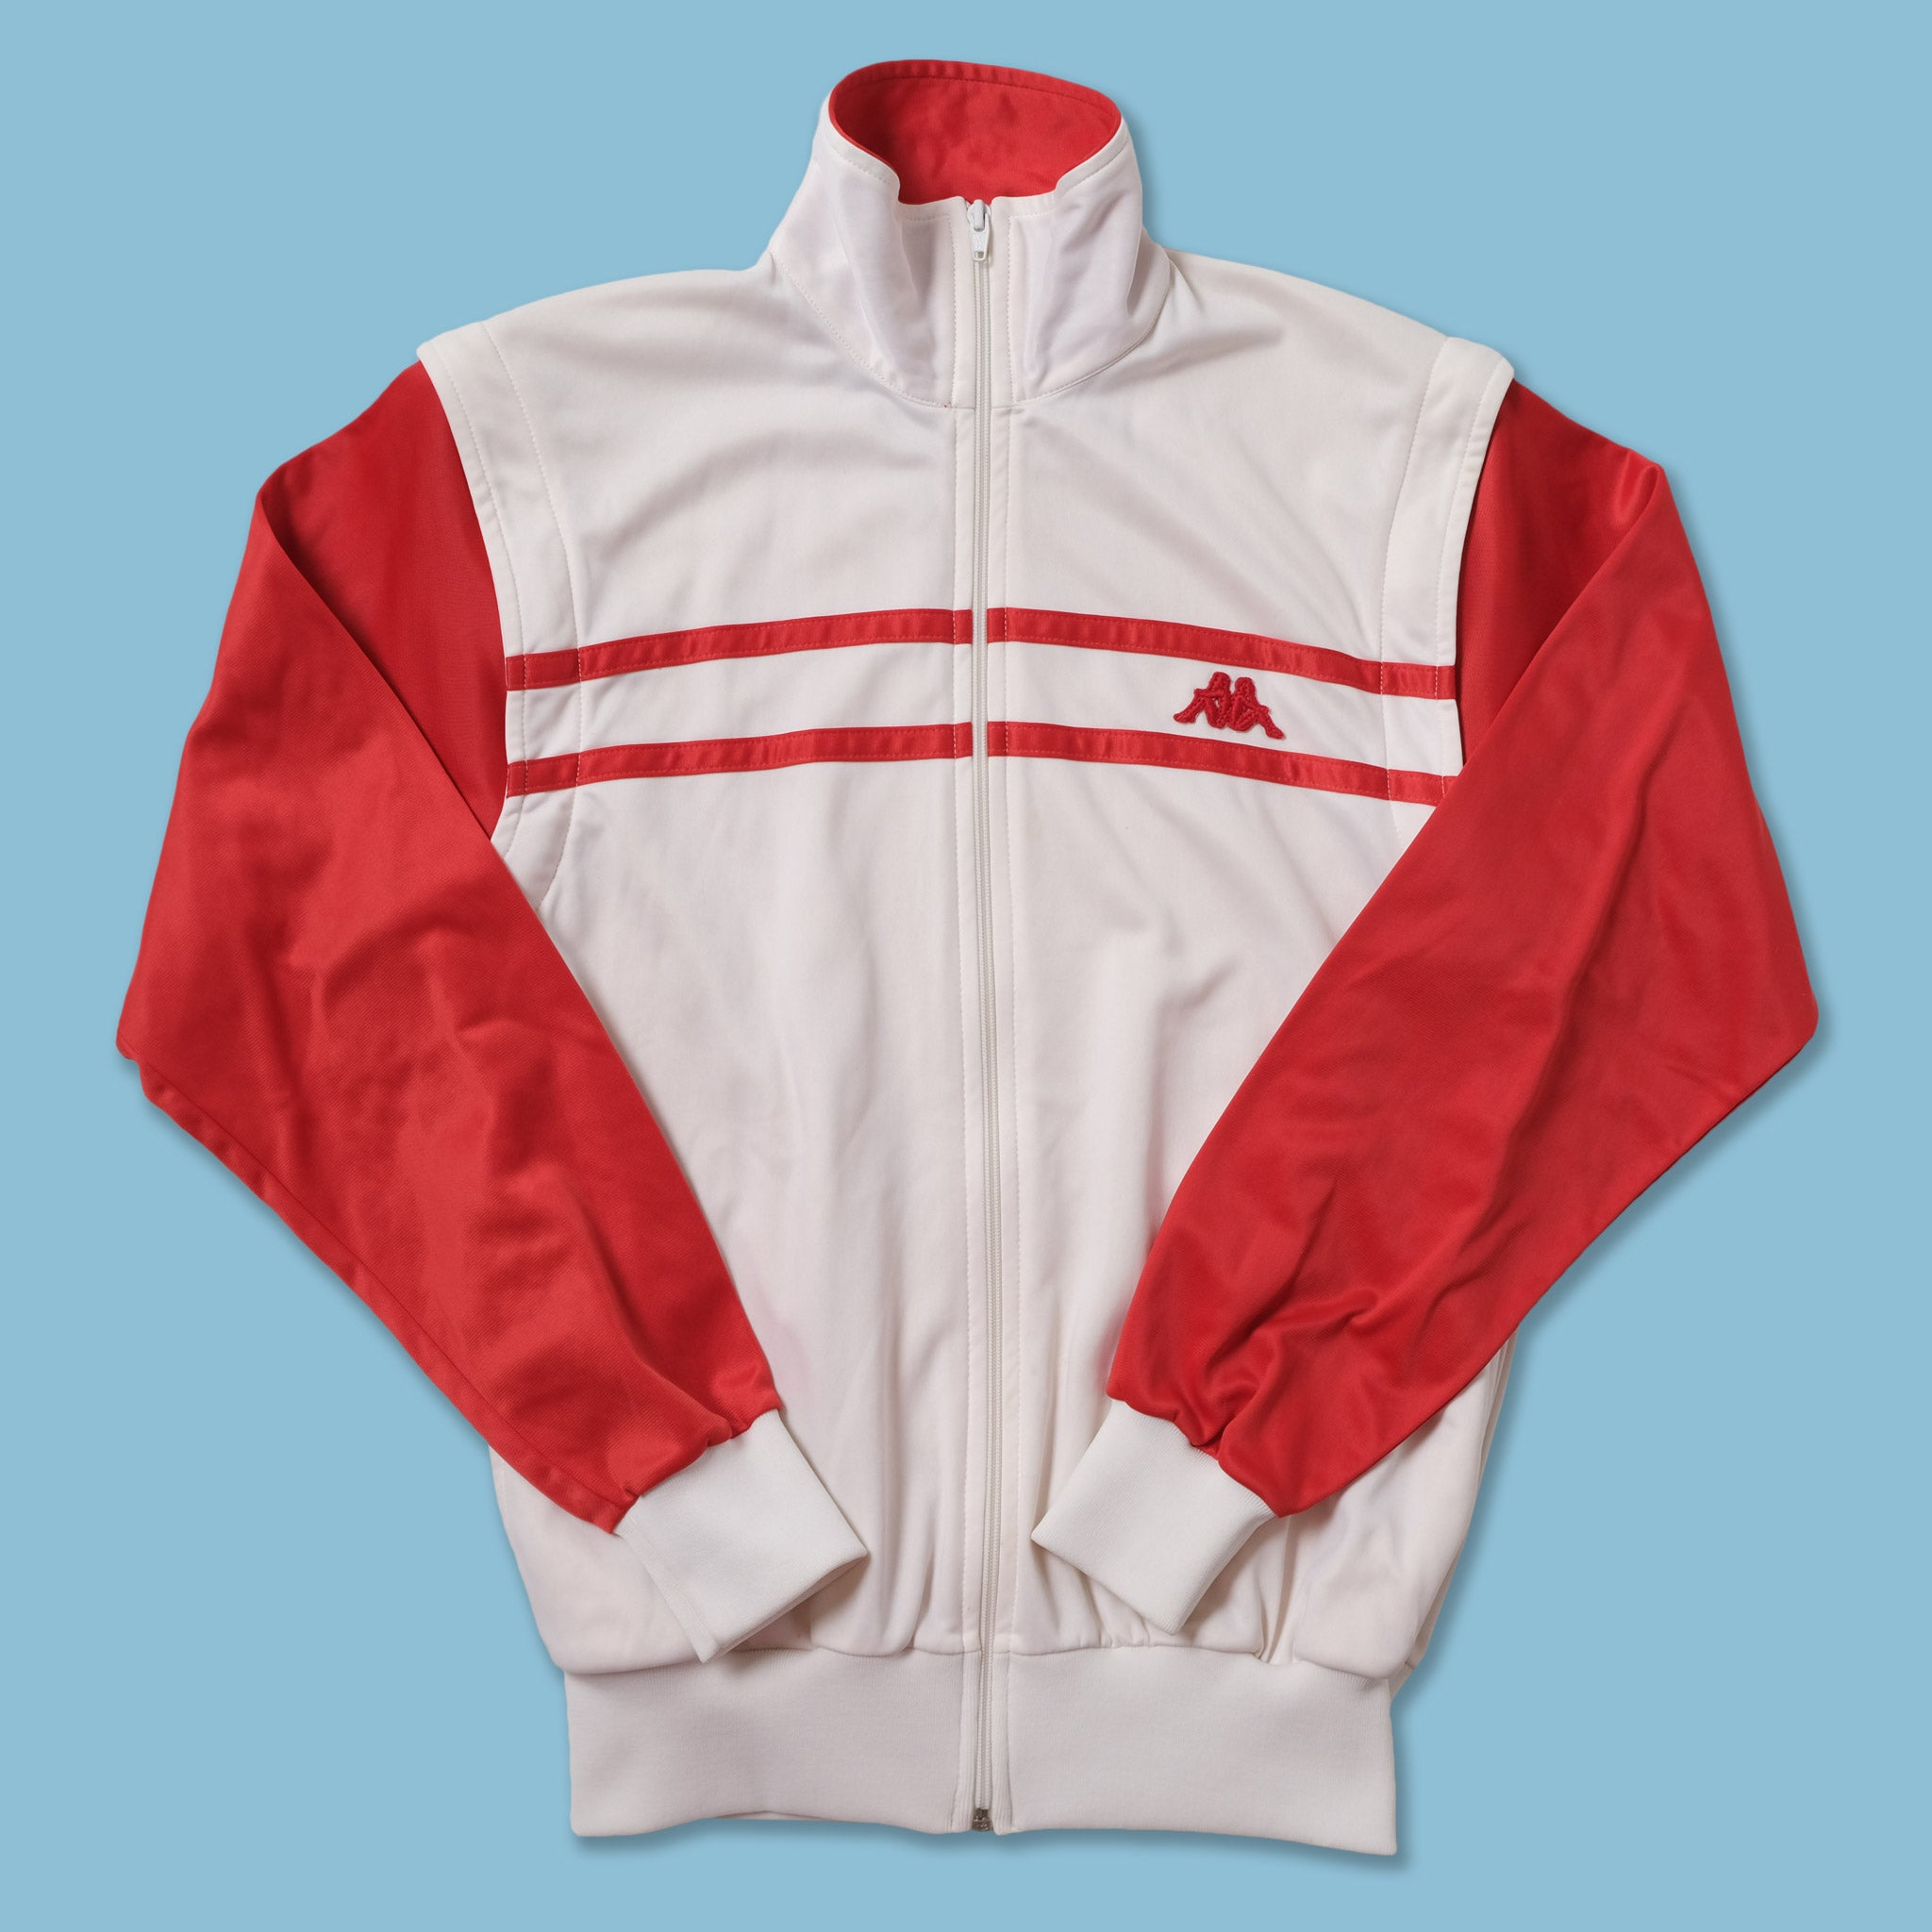 Vintage Kappa Track Jacket Small / Medium